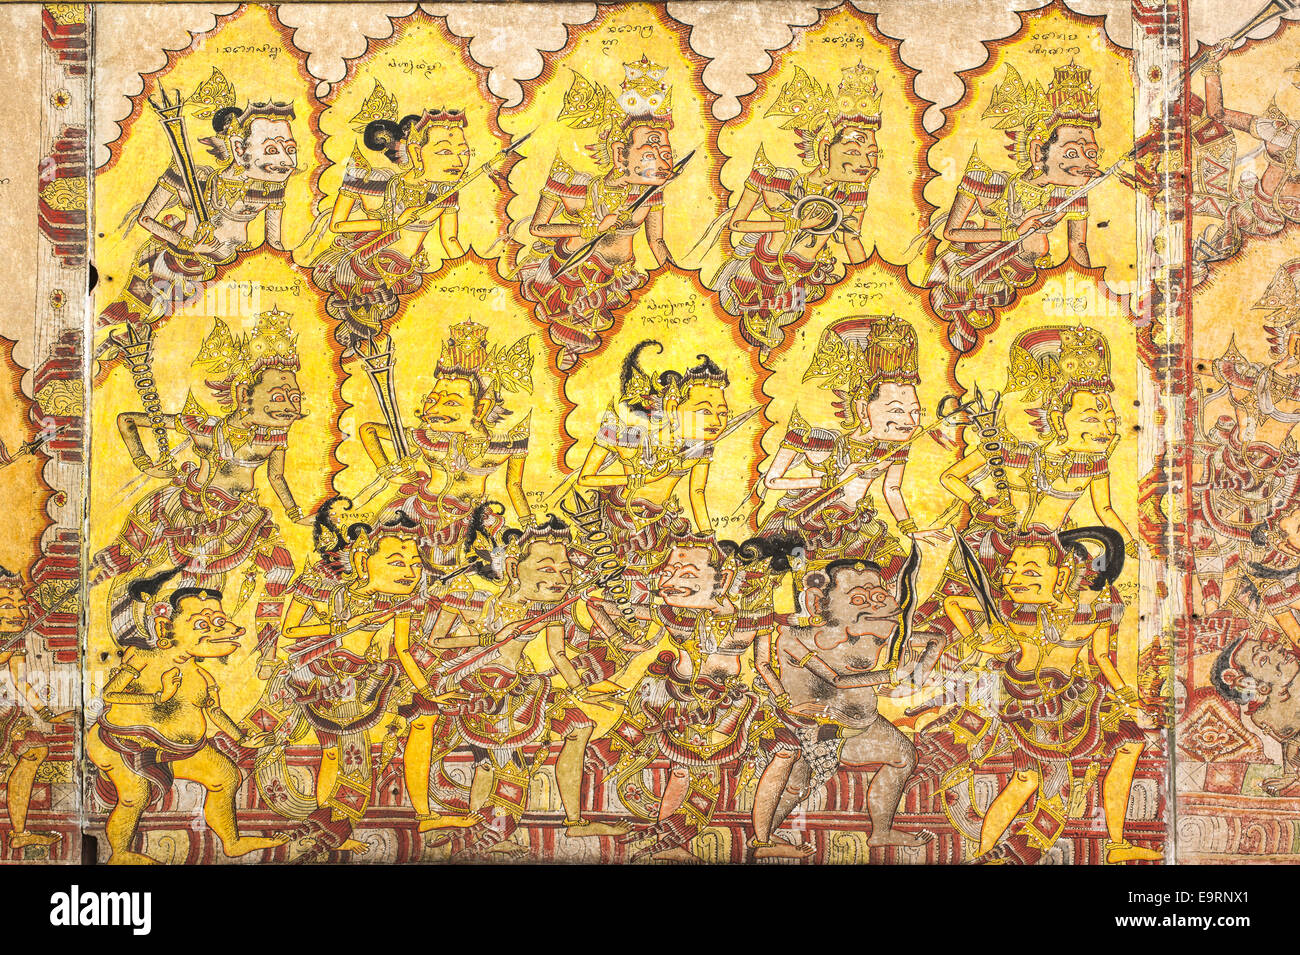 Balinese Mythology Stock Photos & Balinese Mythology Stock Images ...